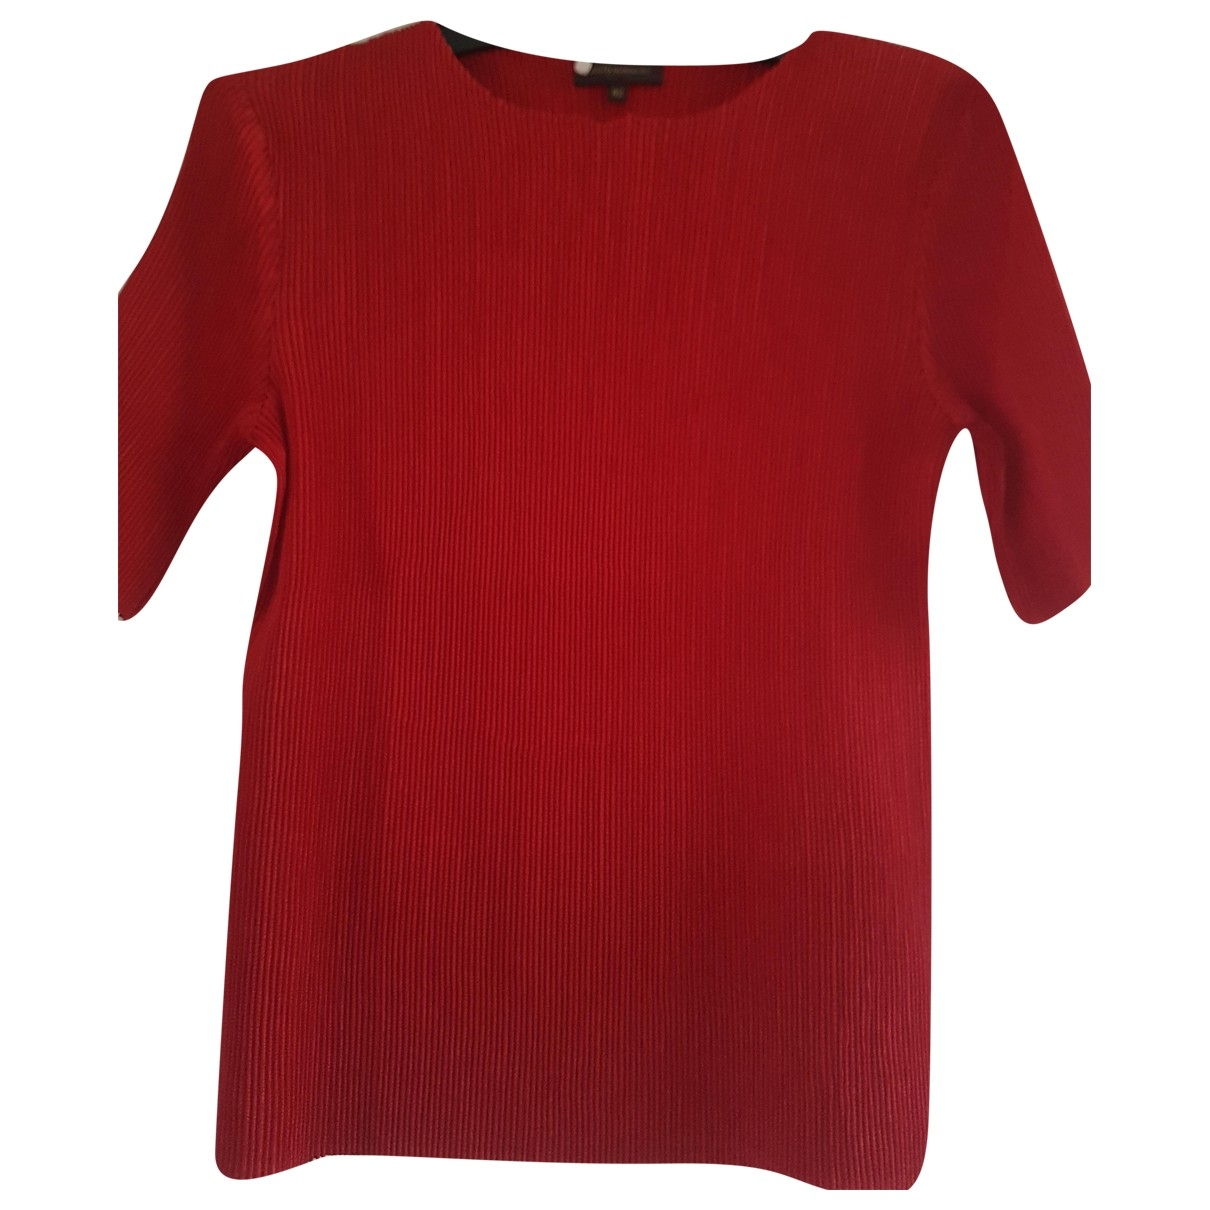 Adolfo Dominguez \N Red  top for Women 42 FR